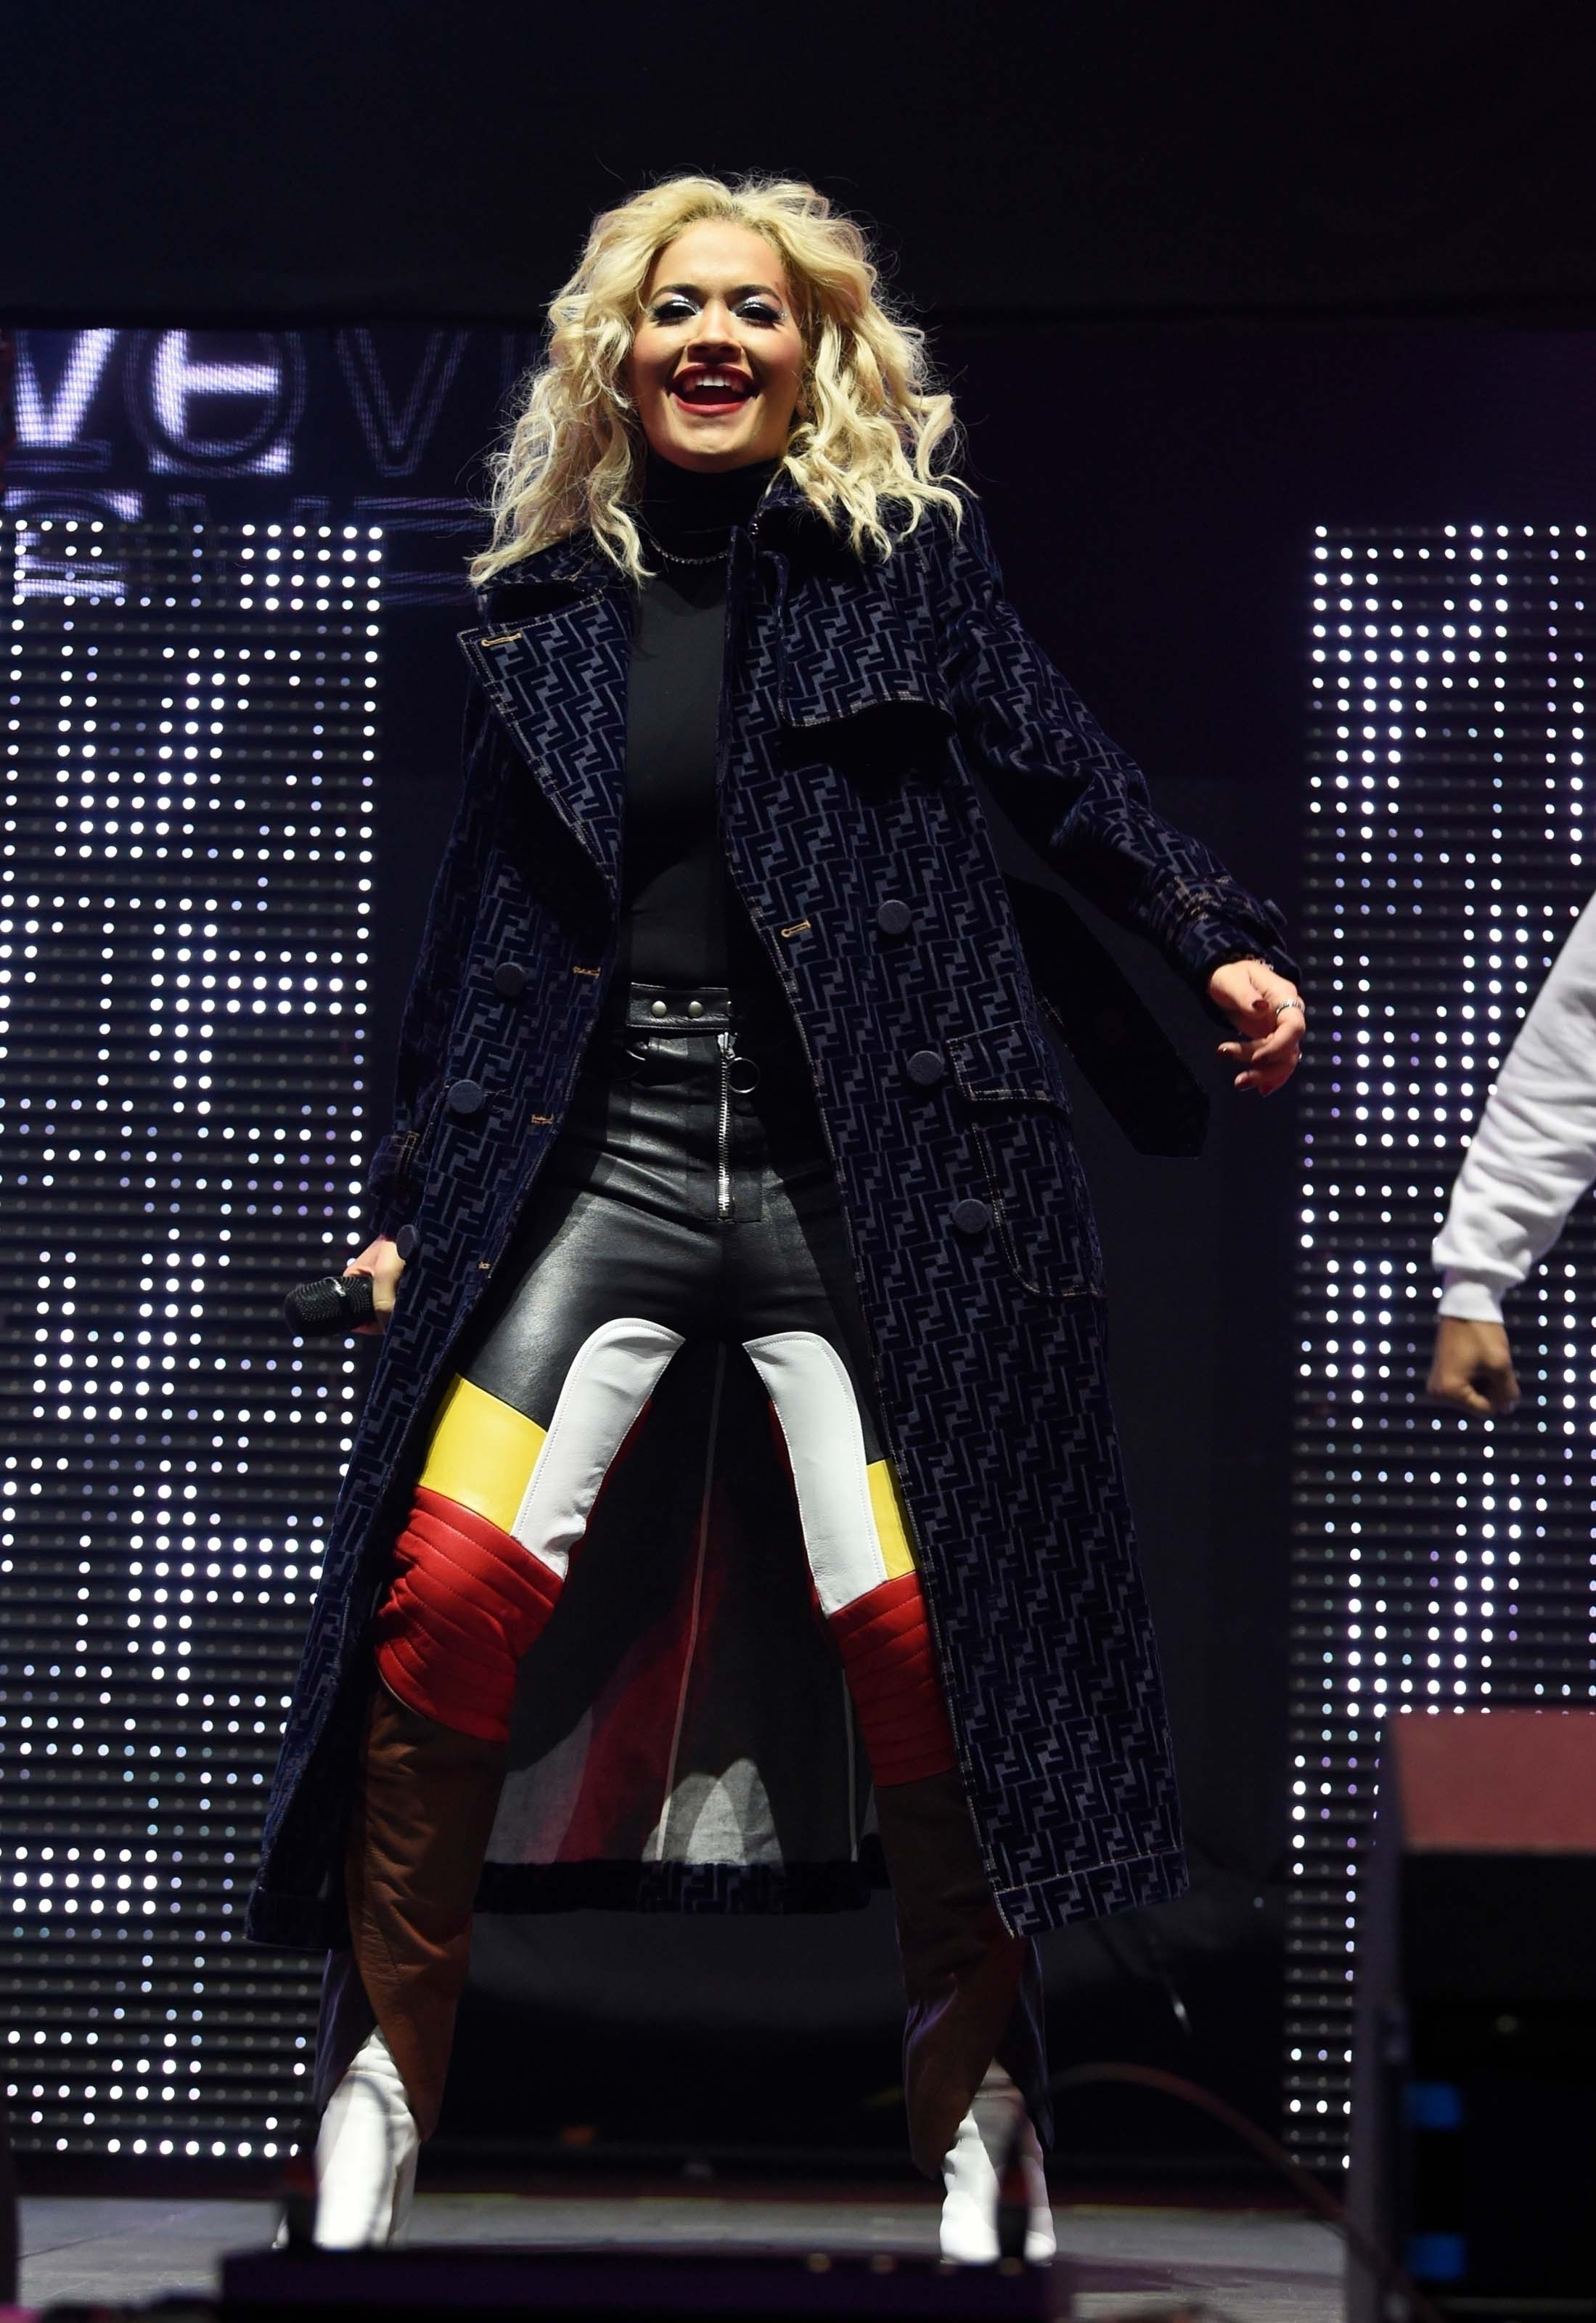 Rita Ora performs live at Radio City Hits Live